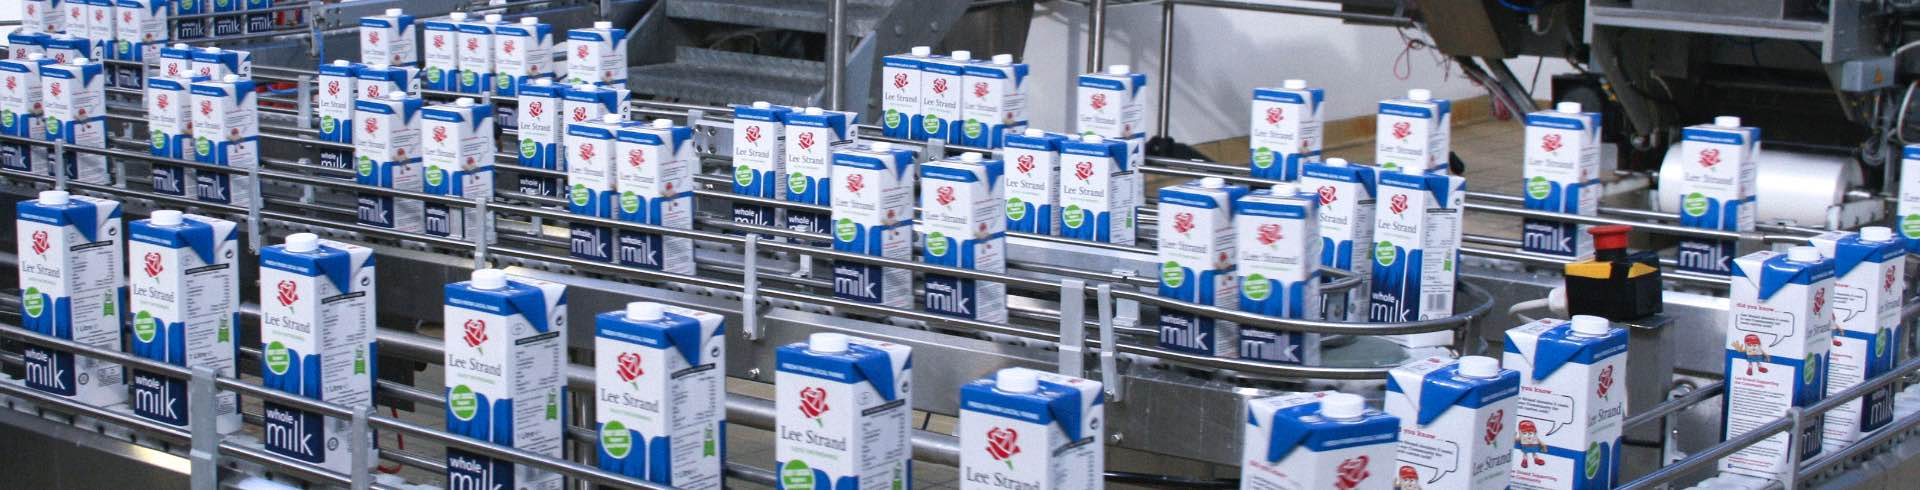 milk cartons on conveyor